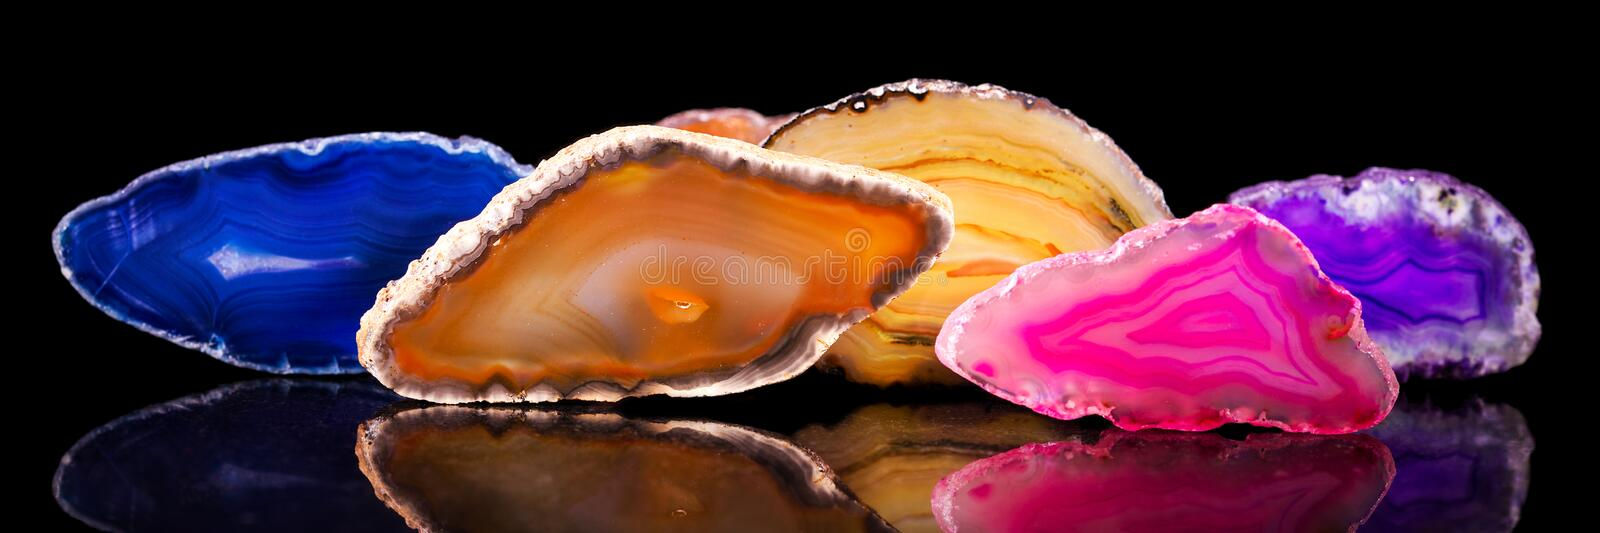 Lots of colorful agate slice, healing stone and mineral, panorama. Banner, header royalty free stock image